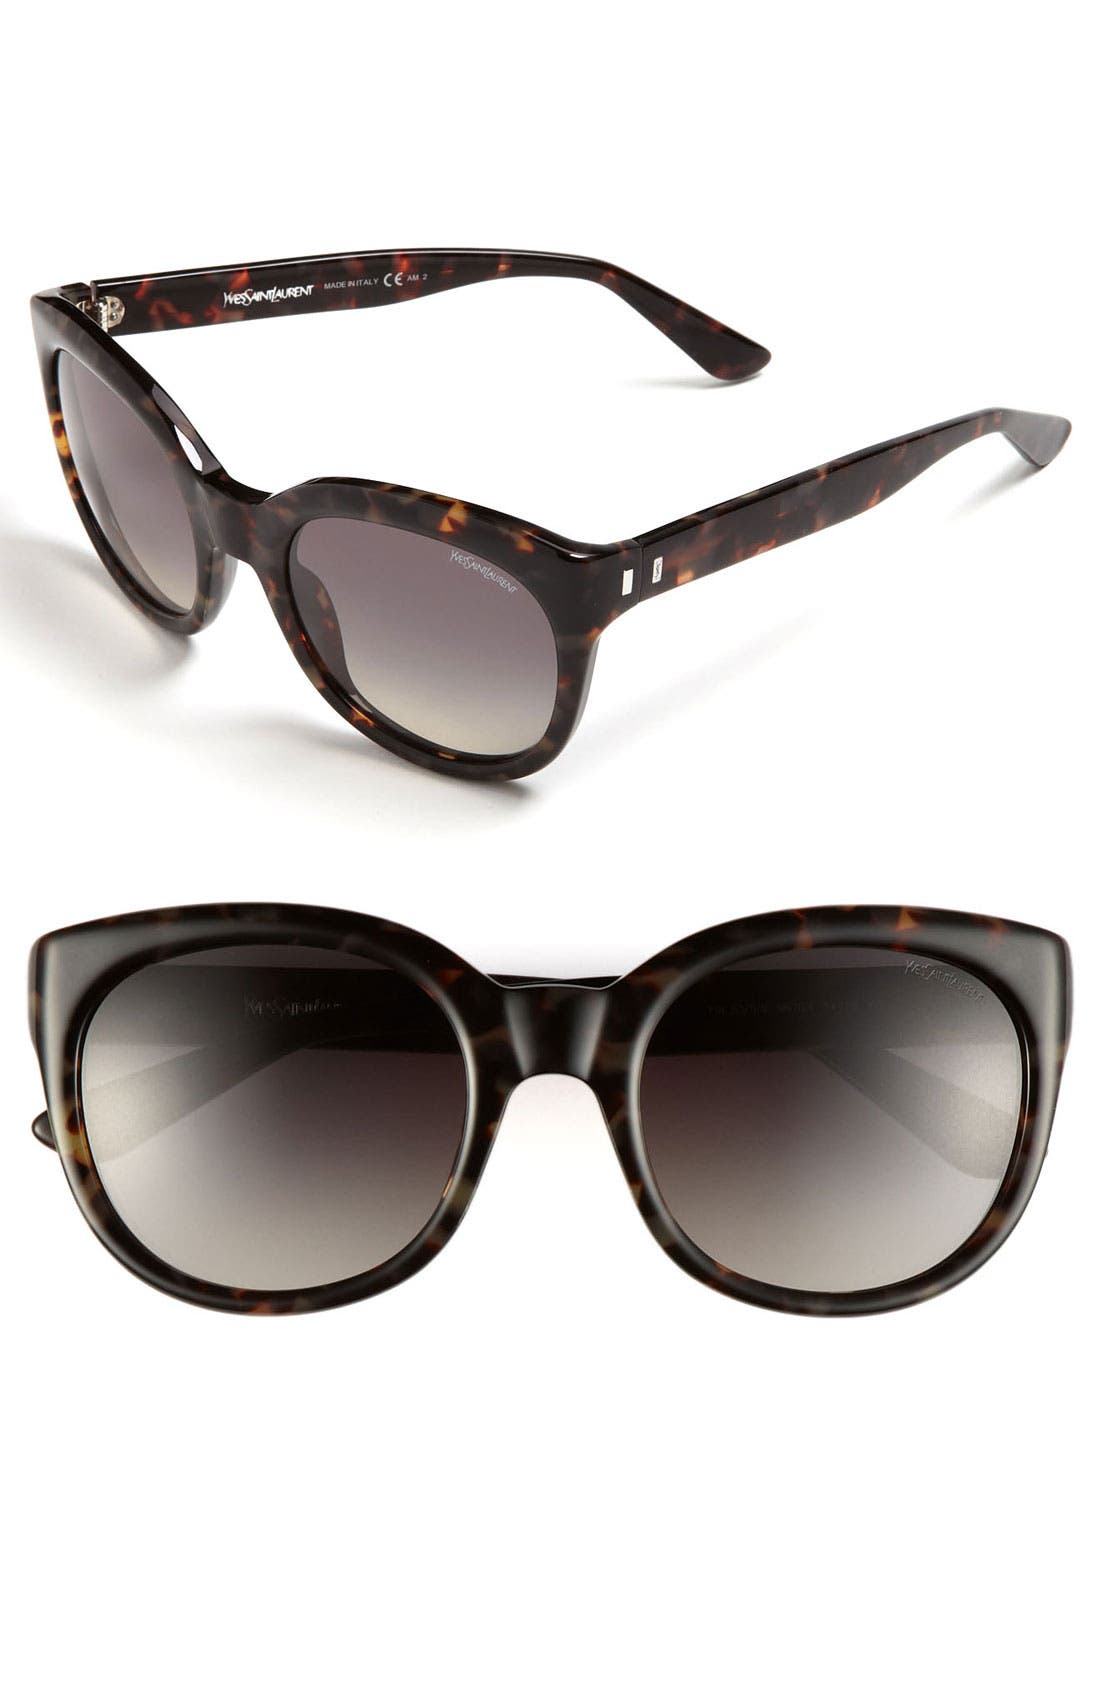 Alternate Image 1 Selected - Saint Laurent Cat's Eye Sunglasses